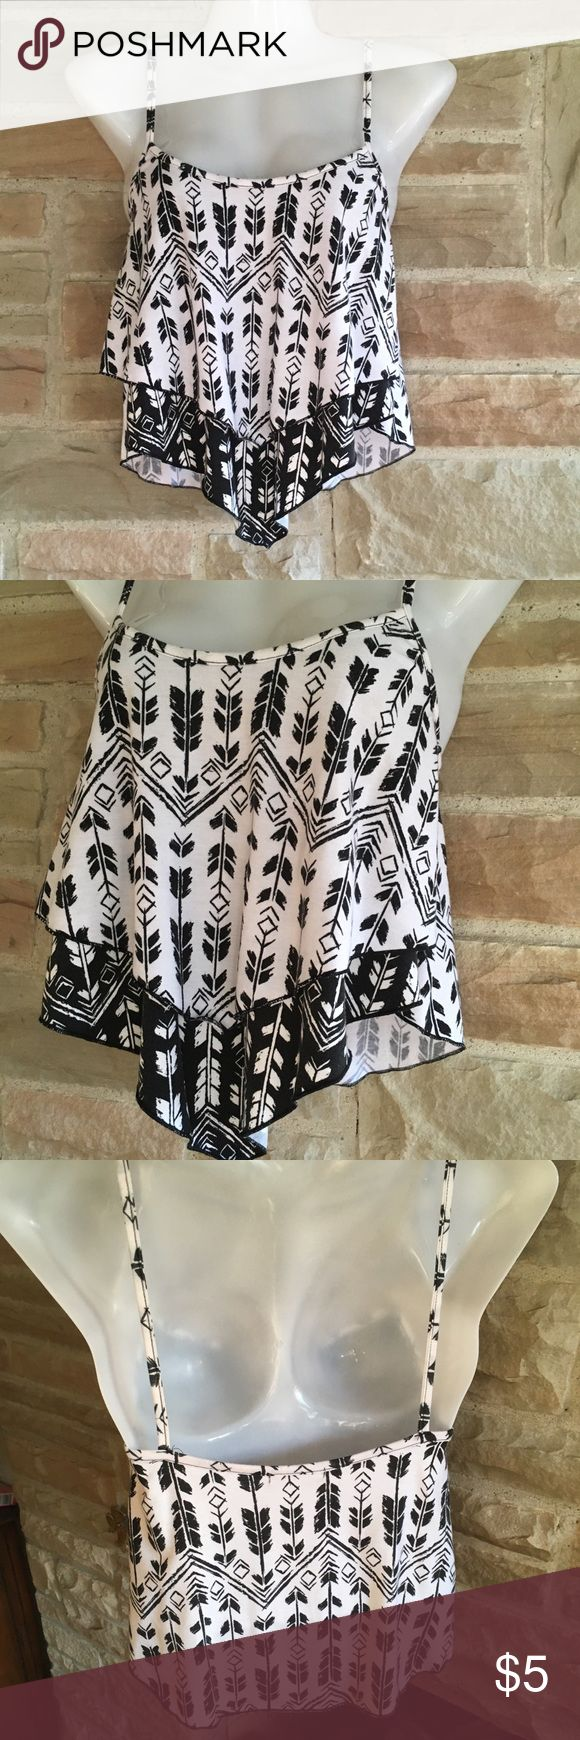 """👄 Charlotte Russe Tribal Bandana Crop Top S Bandana style Charlotte Russe crop top, size S. Straps are not adjustable. Pretty stretchy material. Used once!  Measurements (approximately!): bust-28"""", length-23""""  🎀Bundle discount of 20% on 2 or more items!  🎀Item will be packed and ready to ship with 24 hours of purchase Charlotte Russe Tops Crop Tops"""